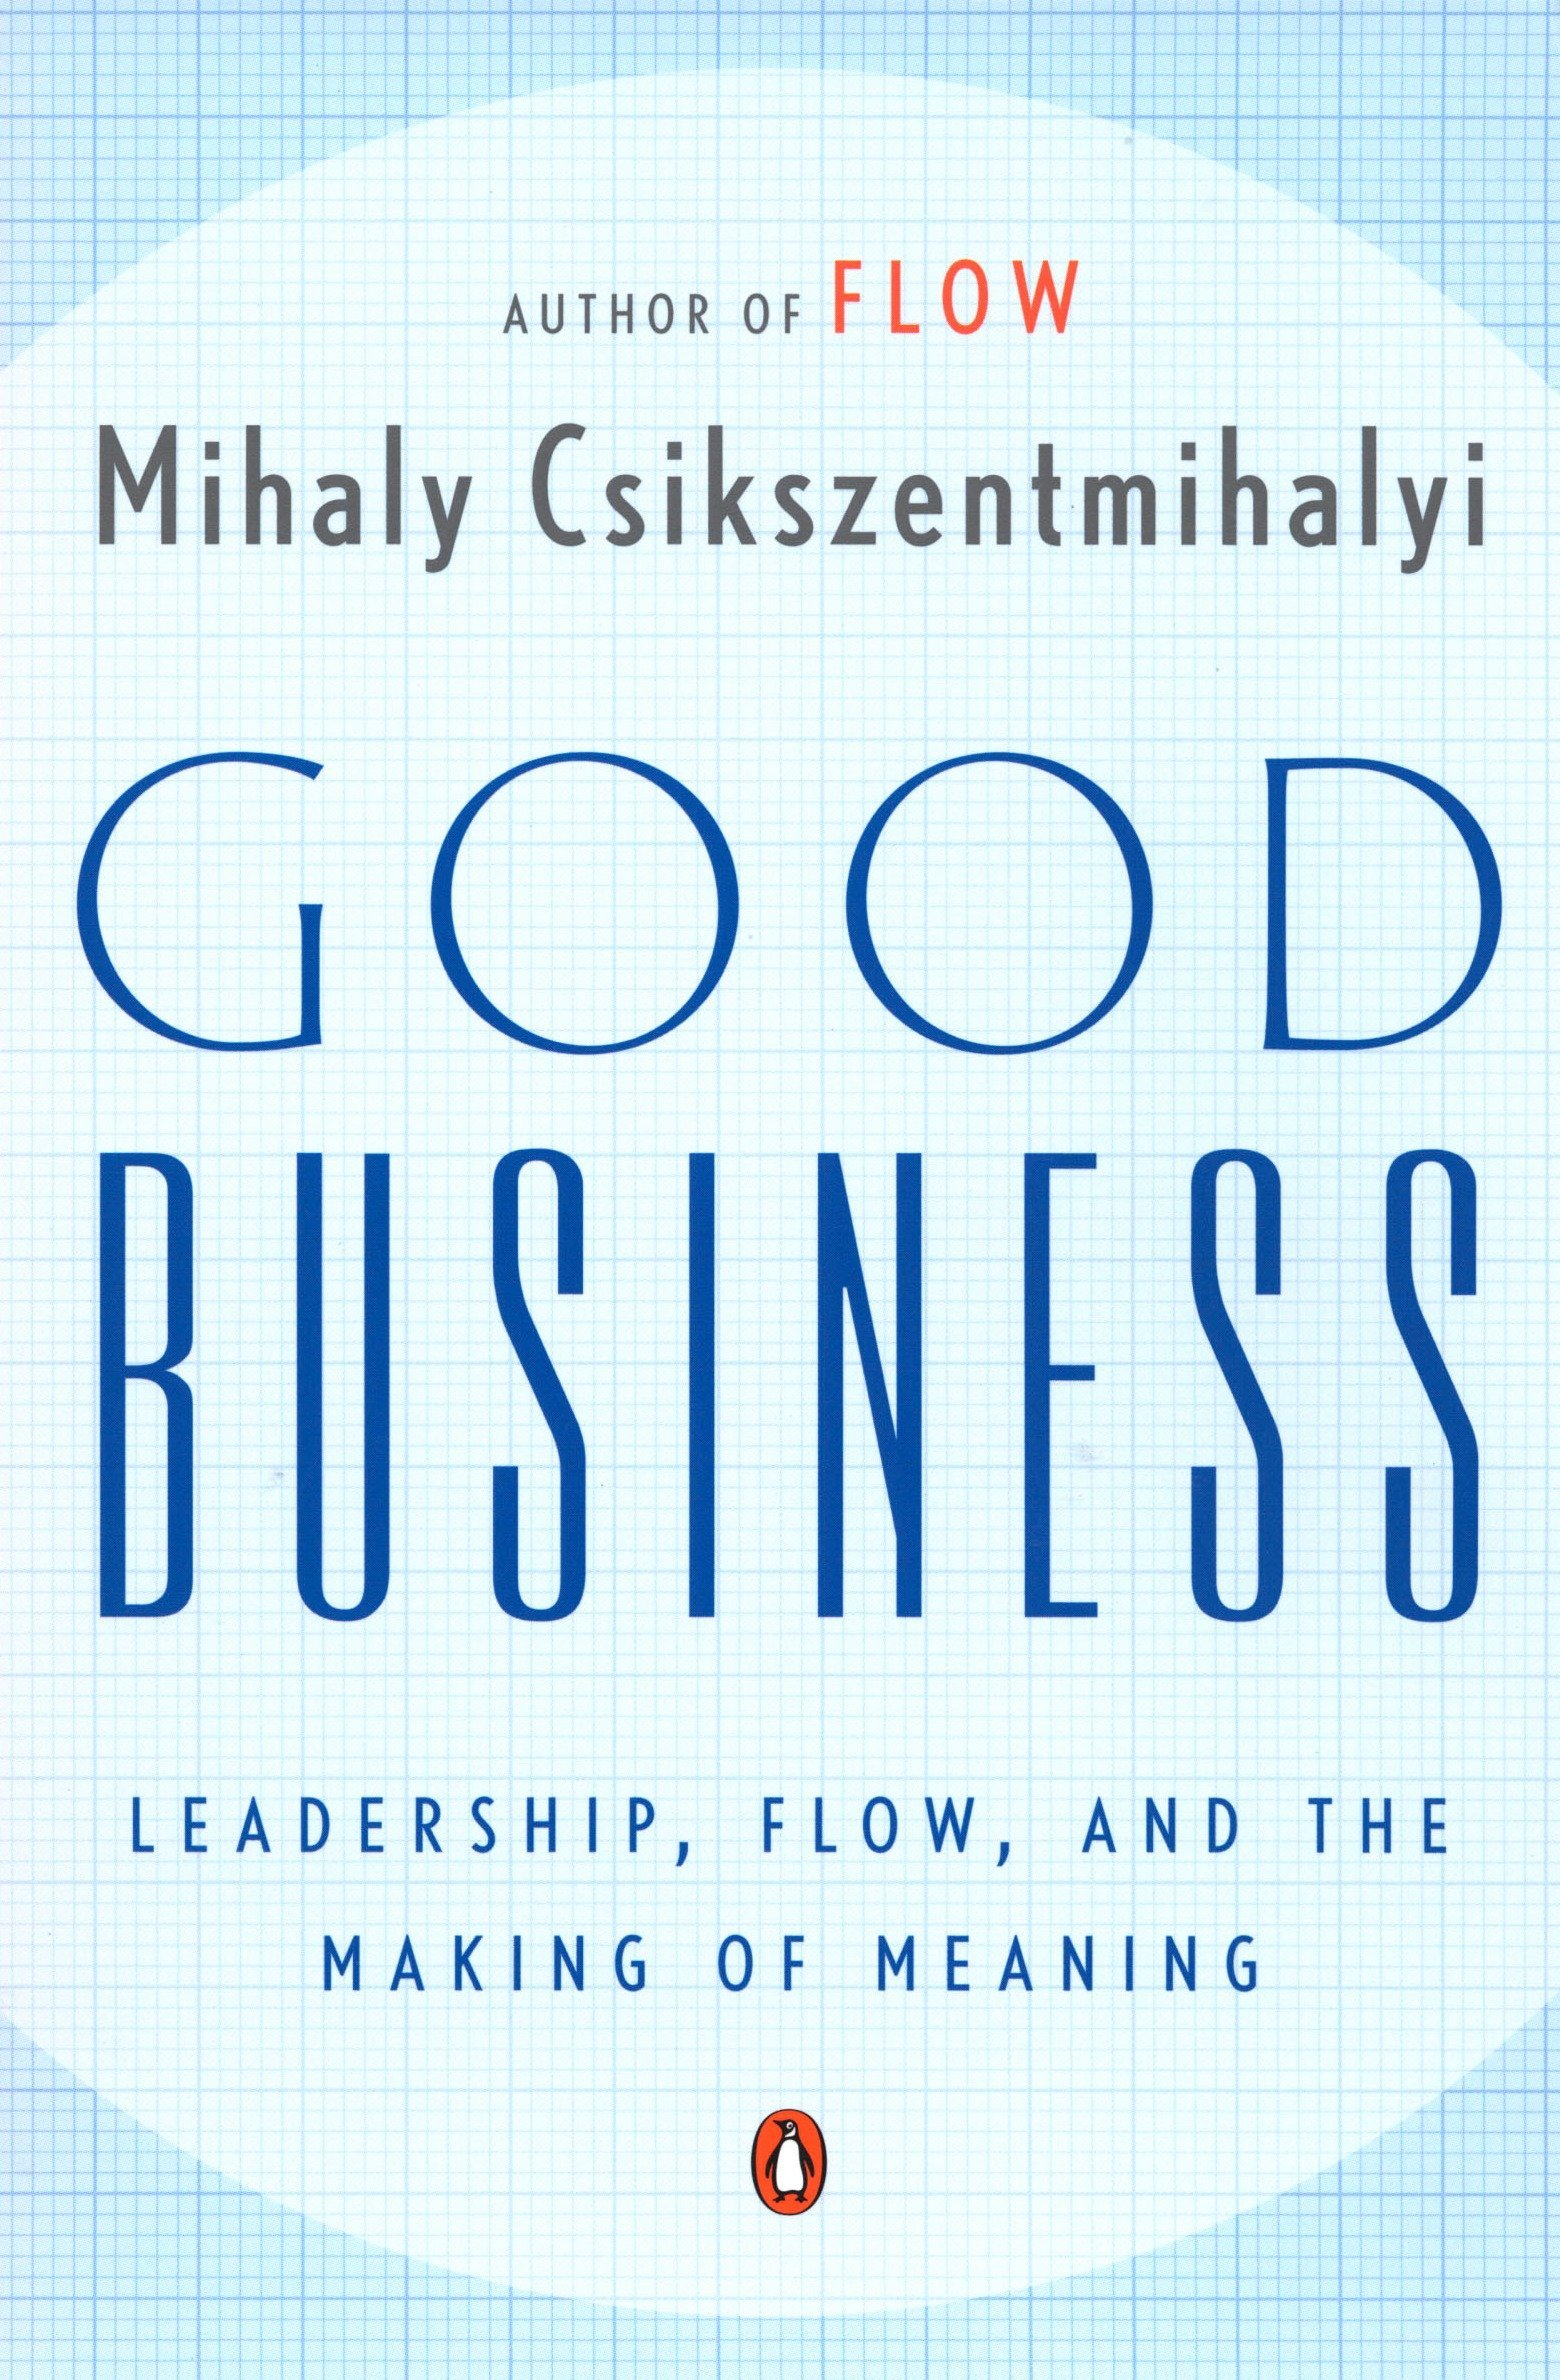 Book Summary: Good Business - Leadership, Flow, and the Making of Meaning by Mihaly Csikszentmihalyi